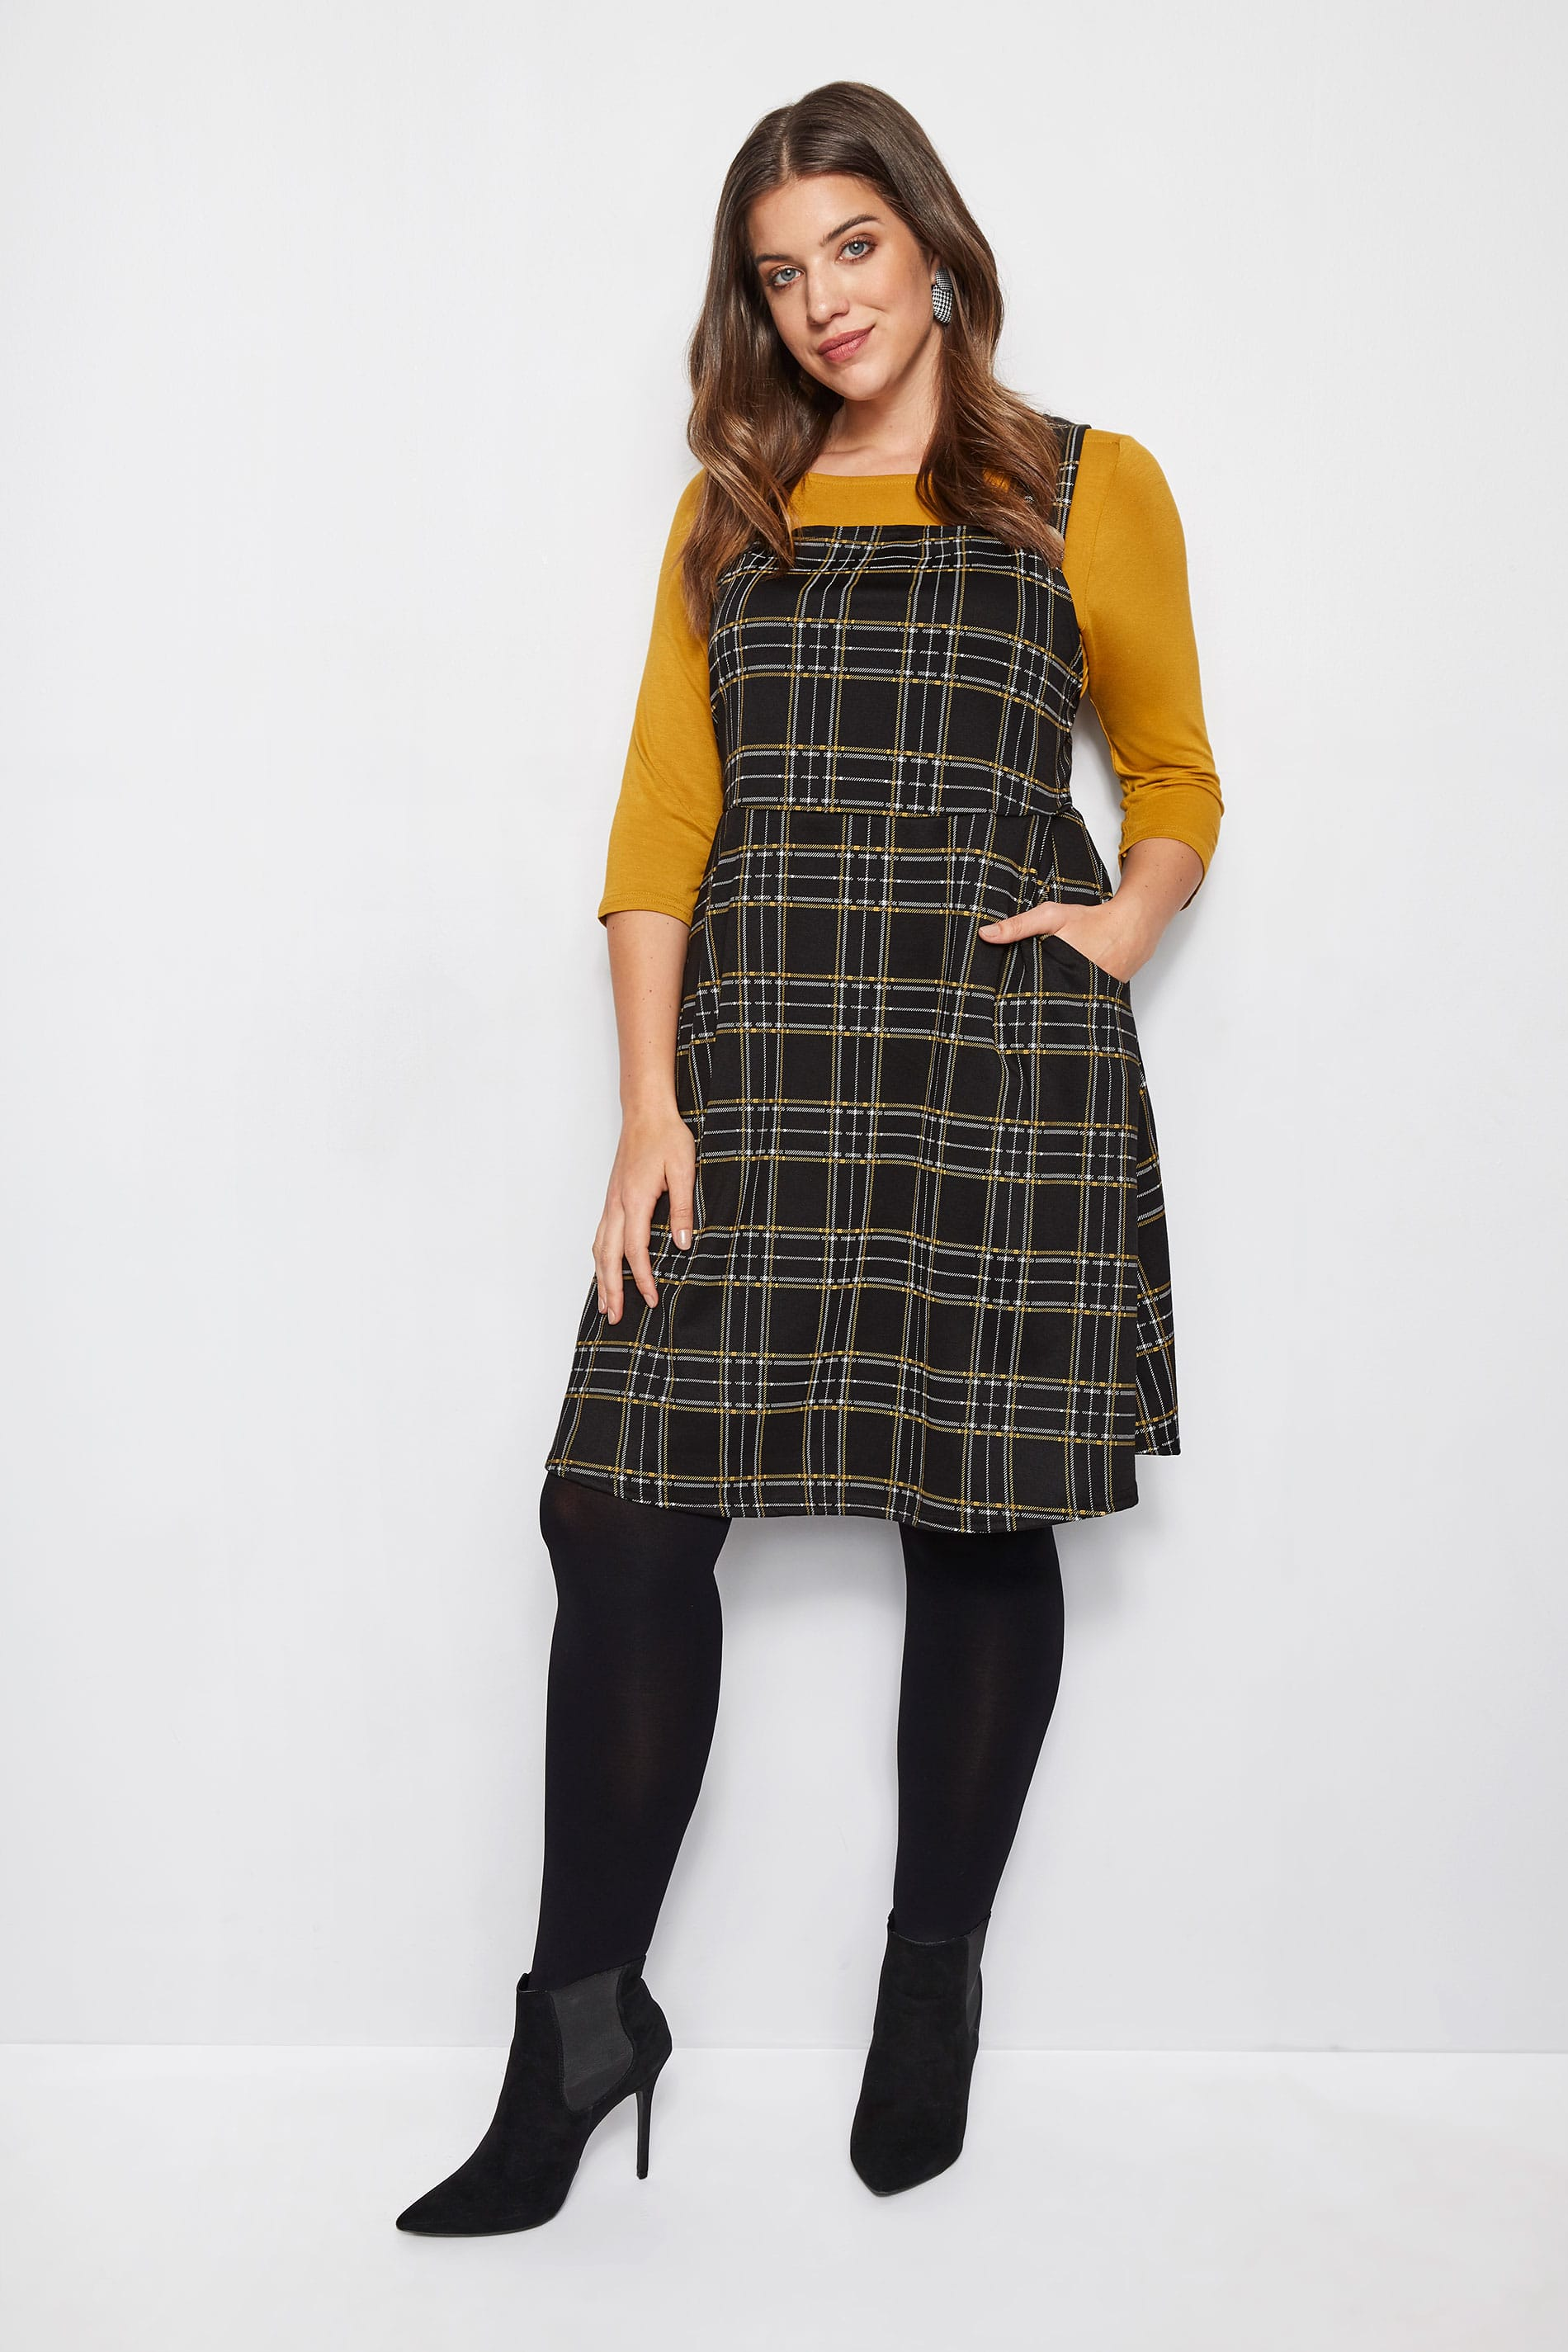 Collezione limitata Plus Size Black Yellow Check Pinafore-4696